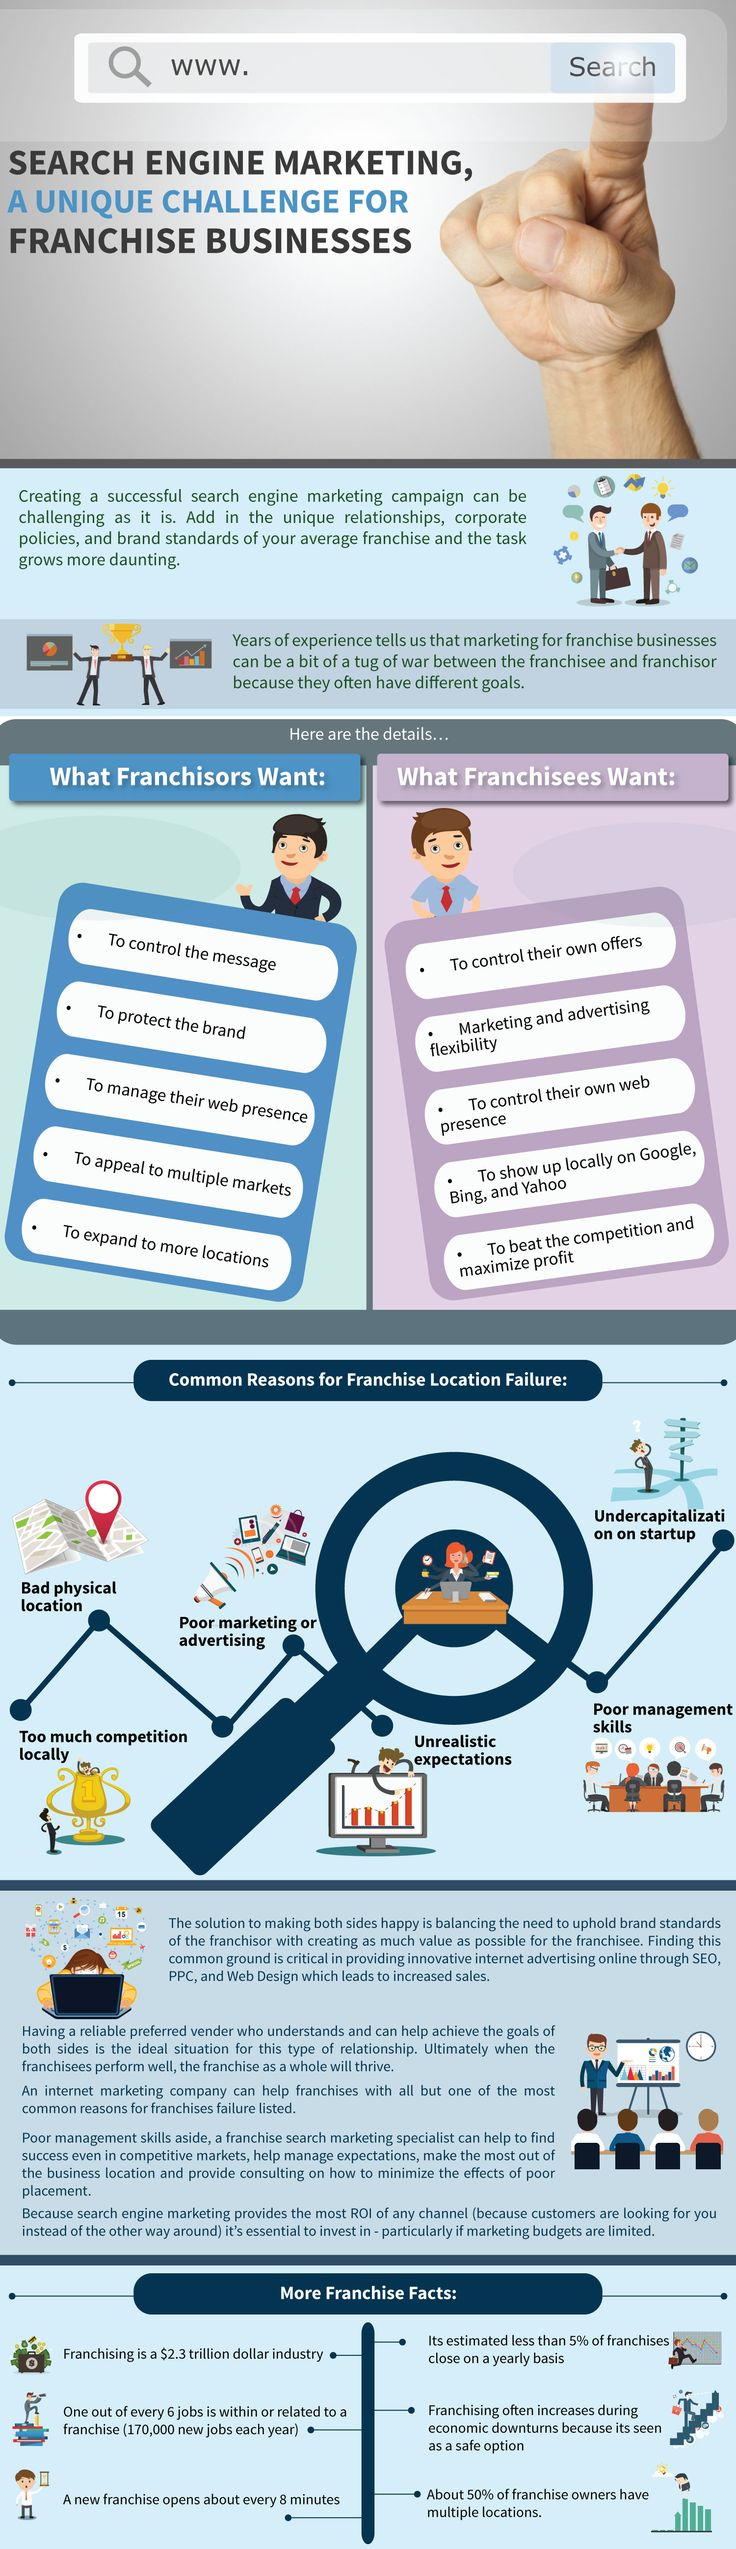 Developing a successful search engine marketing campaign is already a daunting task. Add a franchise business into the mix and it becomes even more difficult. The franchisor and franchisee need to agree on their digital marketing strategy. The following infographic from NetSearch Direct looks at the unique challenges franchises face with search marketing.